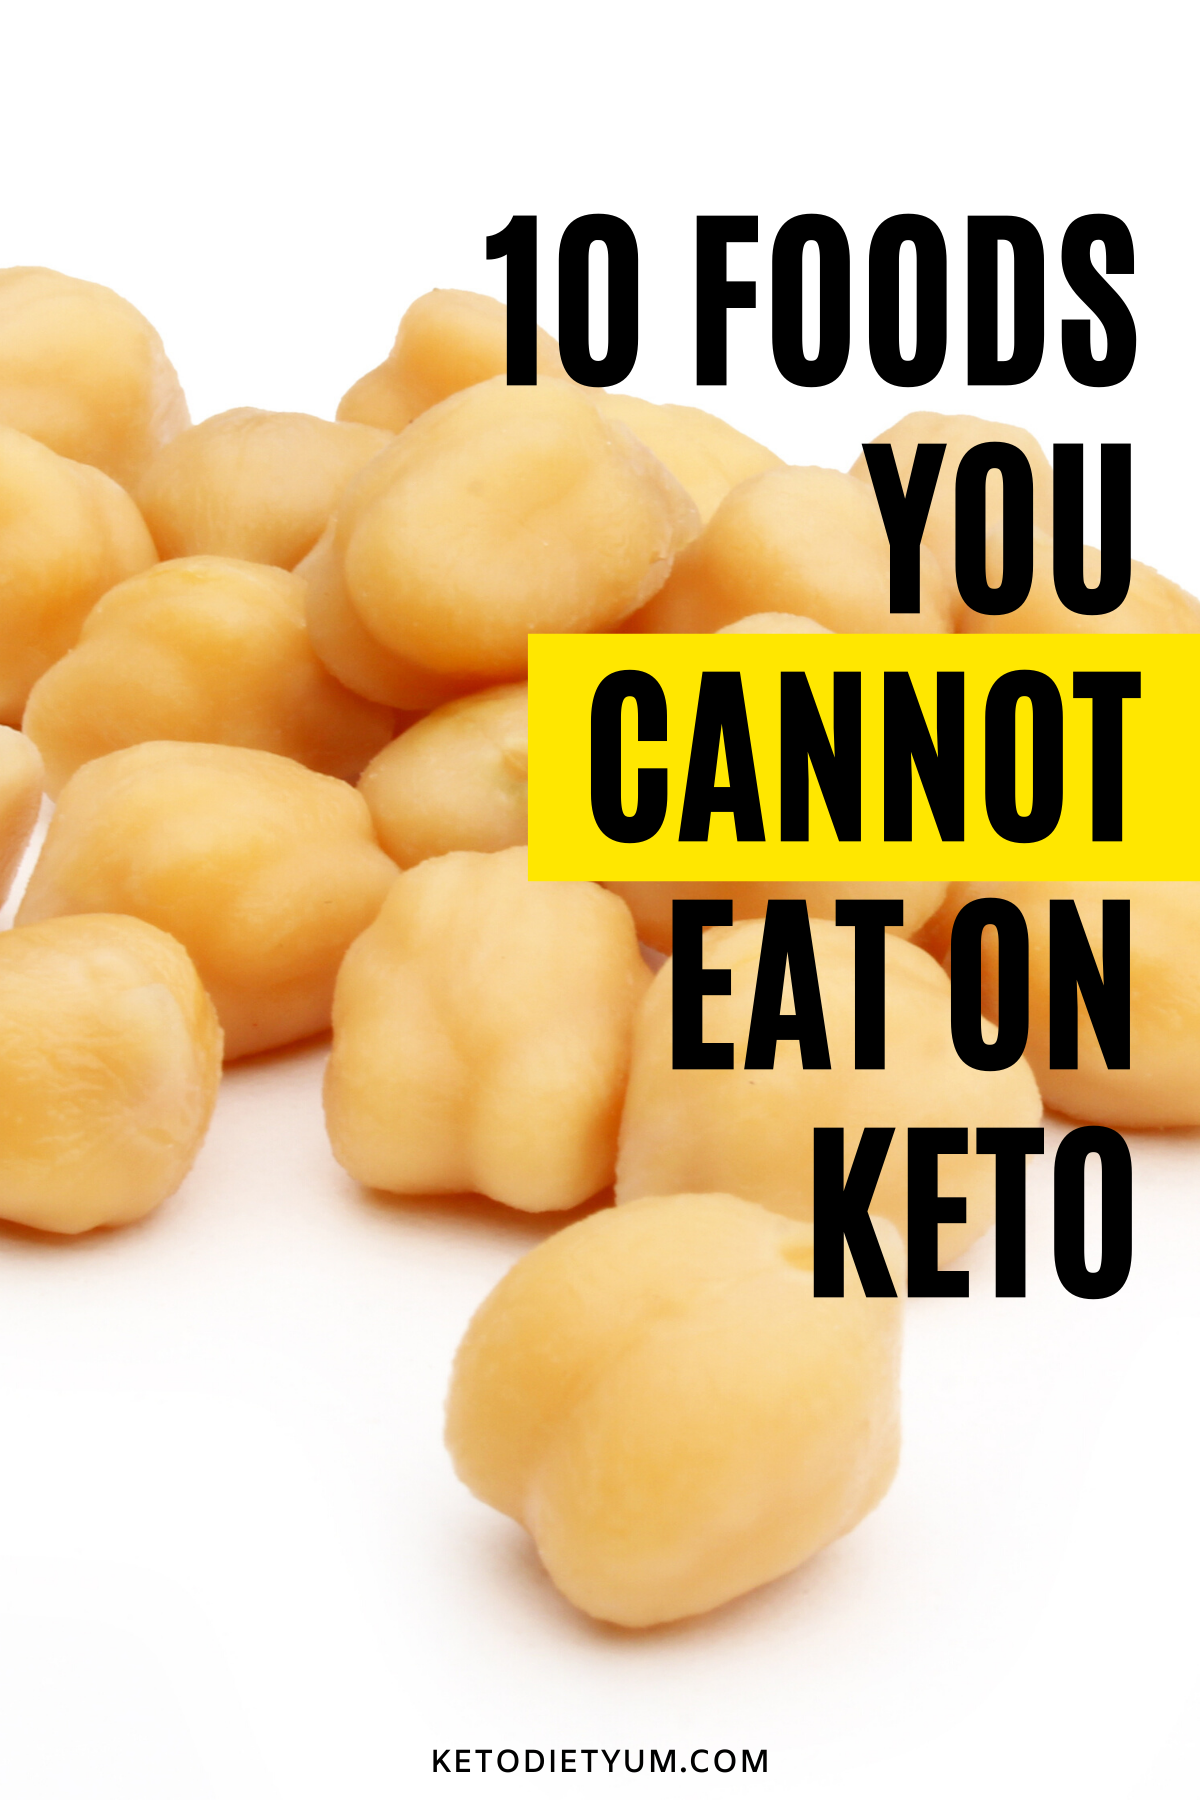 Check out these 10 healthy foods you must avoid on the low-carb keto diet. Don't eat these foods that will kick you out of ketosis! #ketodiet #ketogenic #lowcarb